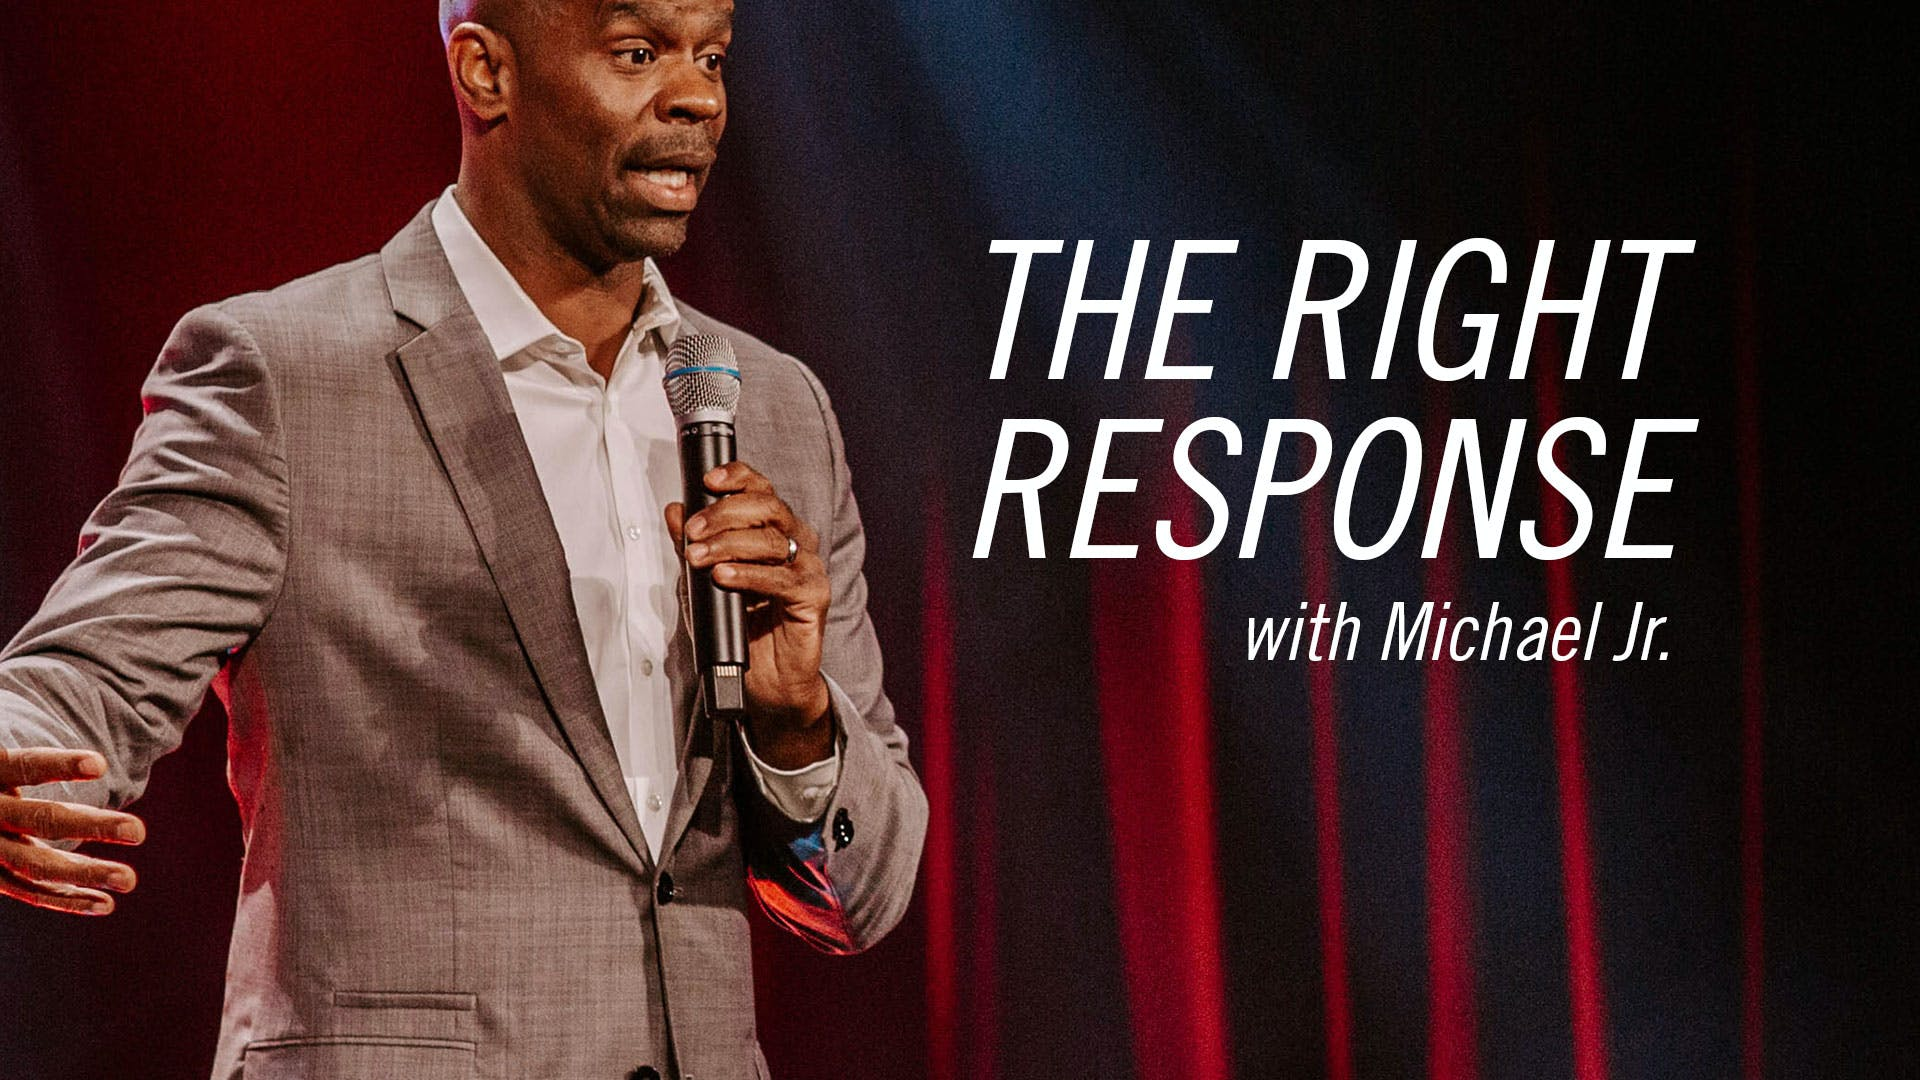 The Right Response with Michael Jr.